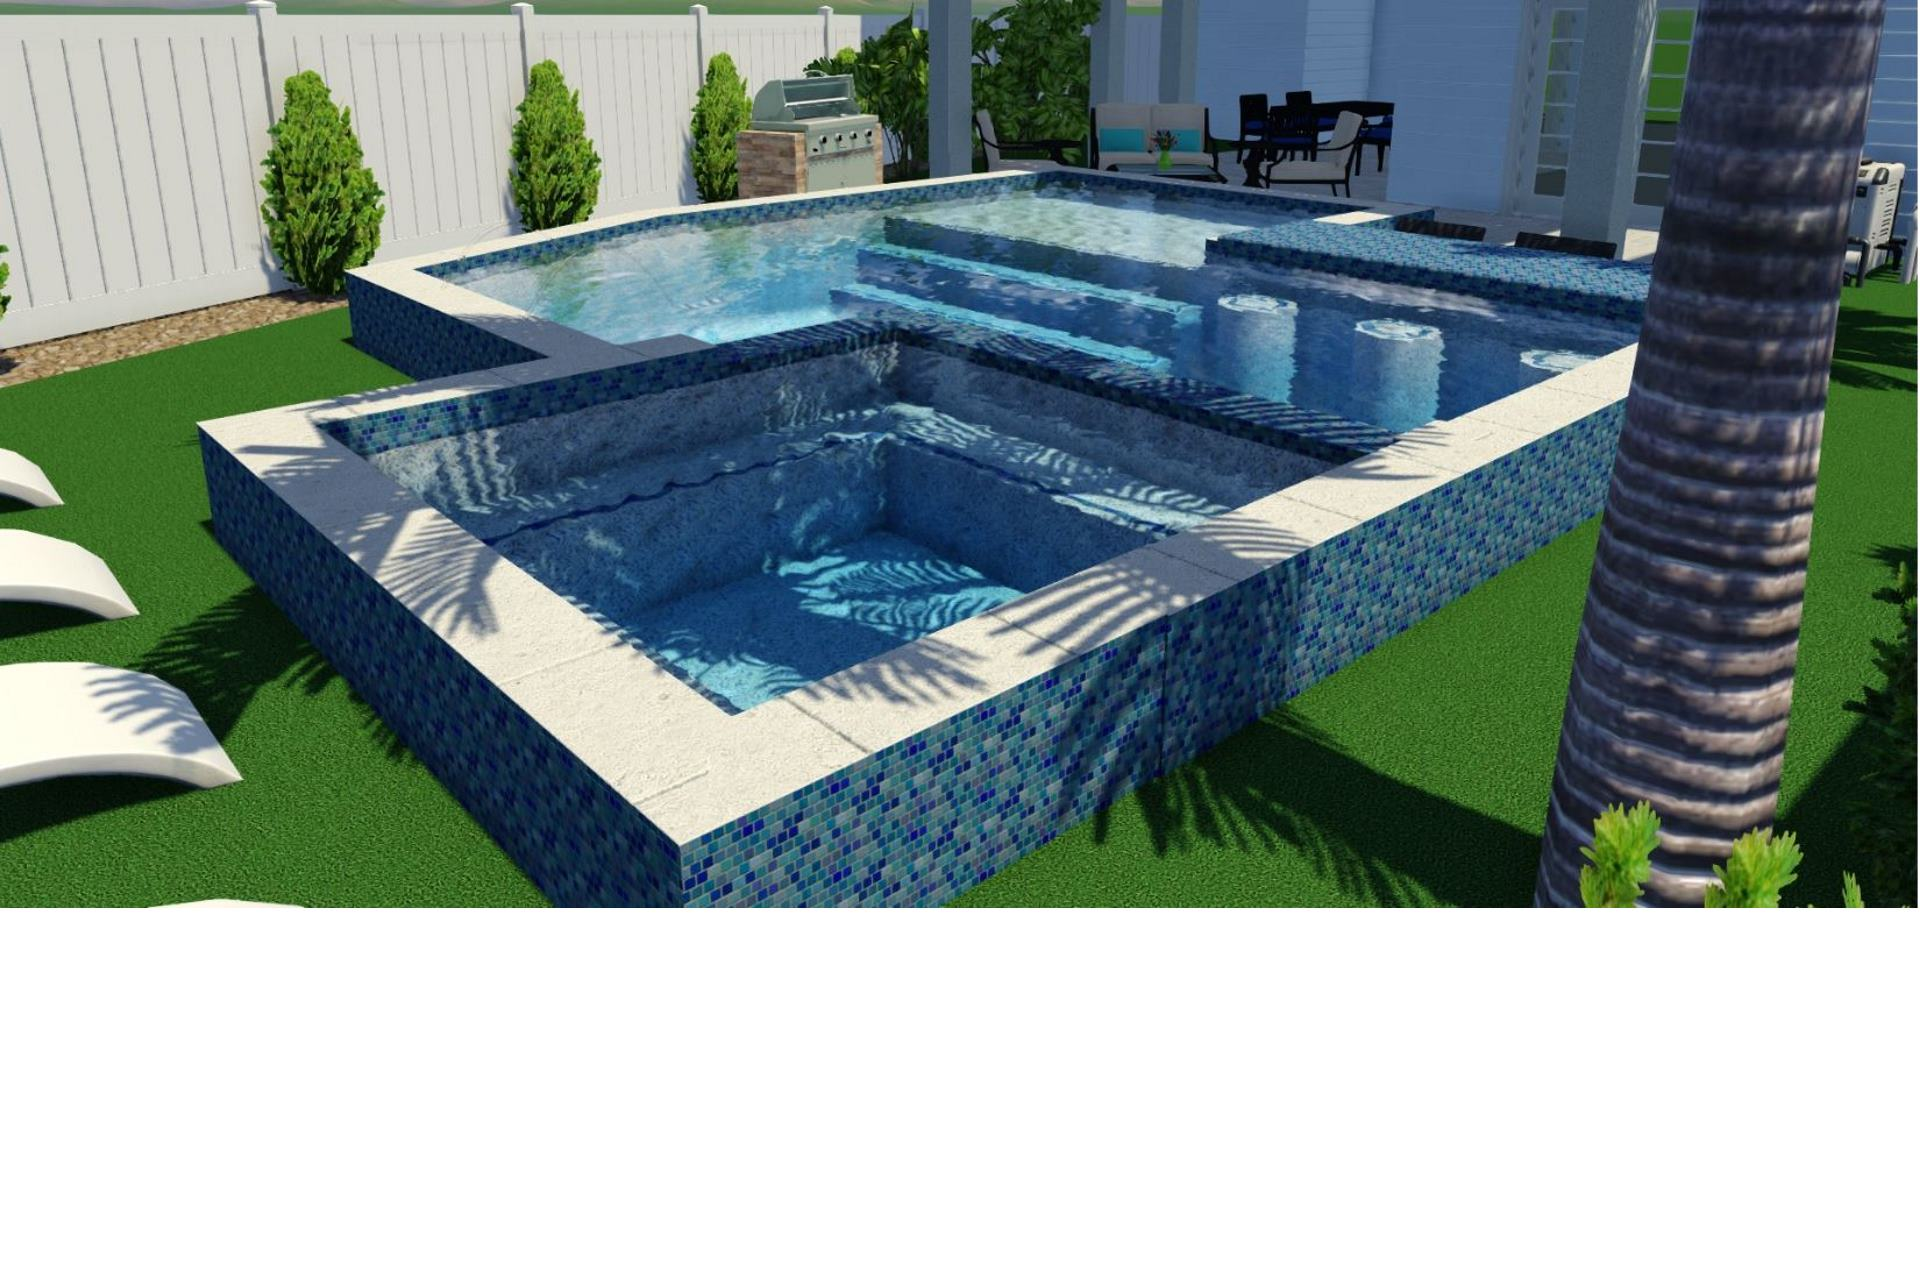 Actual Pool and Spa Design